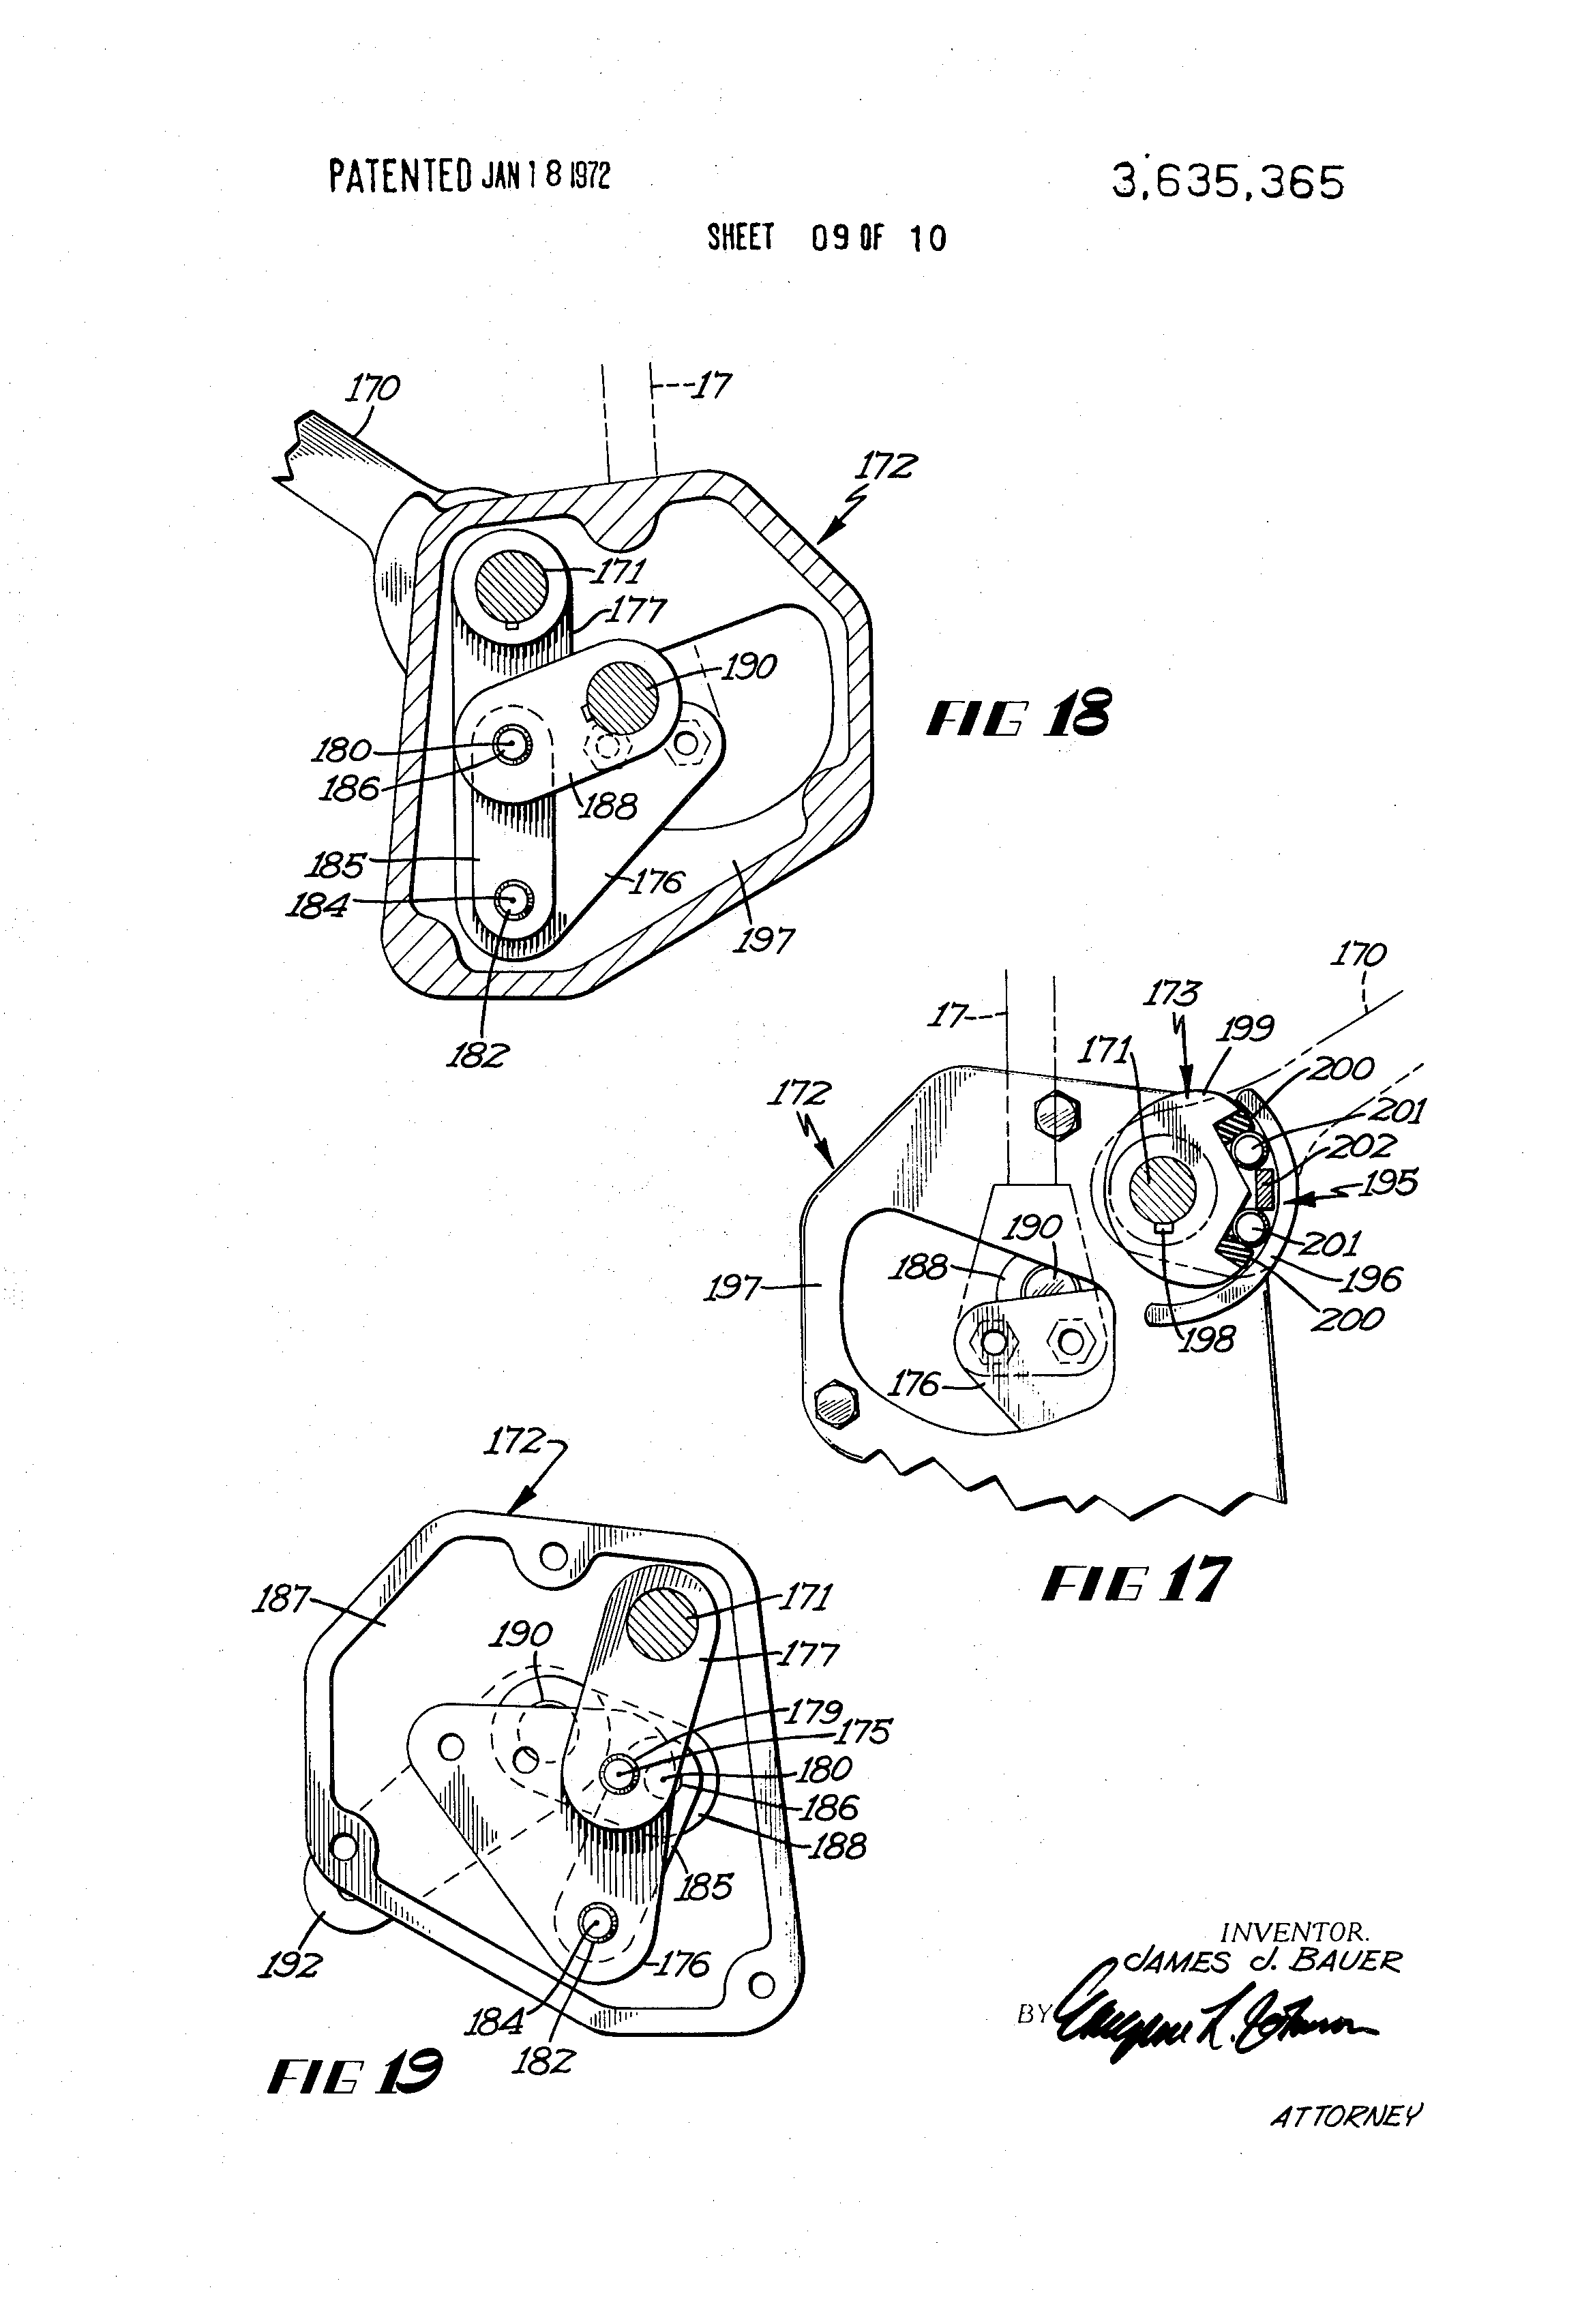 Left Hand Hydro Transaxle Assembly No 119 3330 additionally Simple Stirling Engine Plans as well EP0411699A1 in addition Hydrogear Hydraulics in addition Bdp 16a Hydraulic Pump Assembly. on swash plate engine